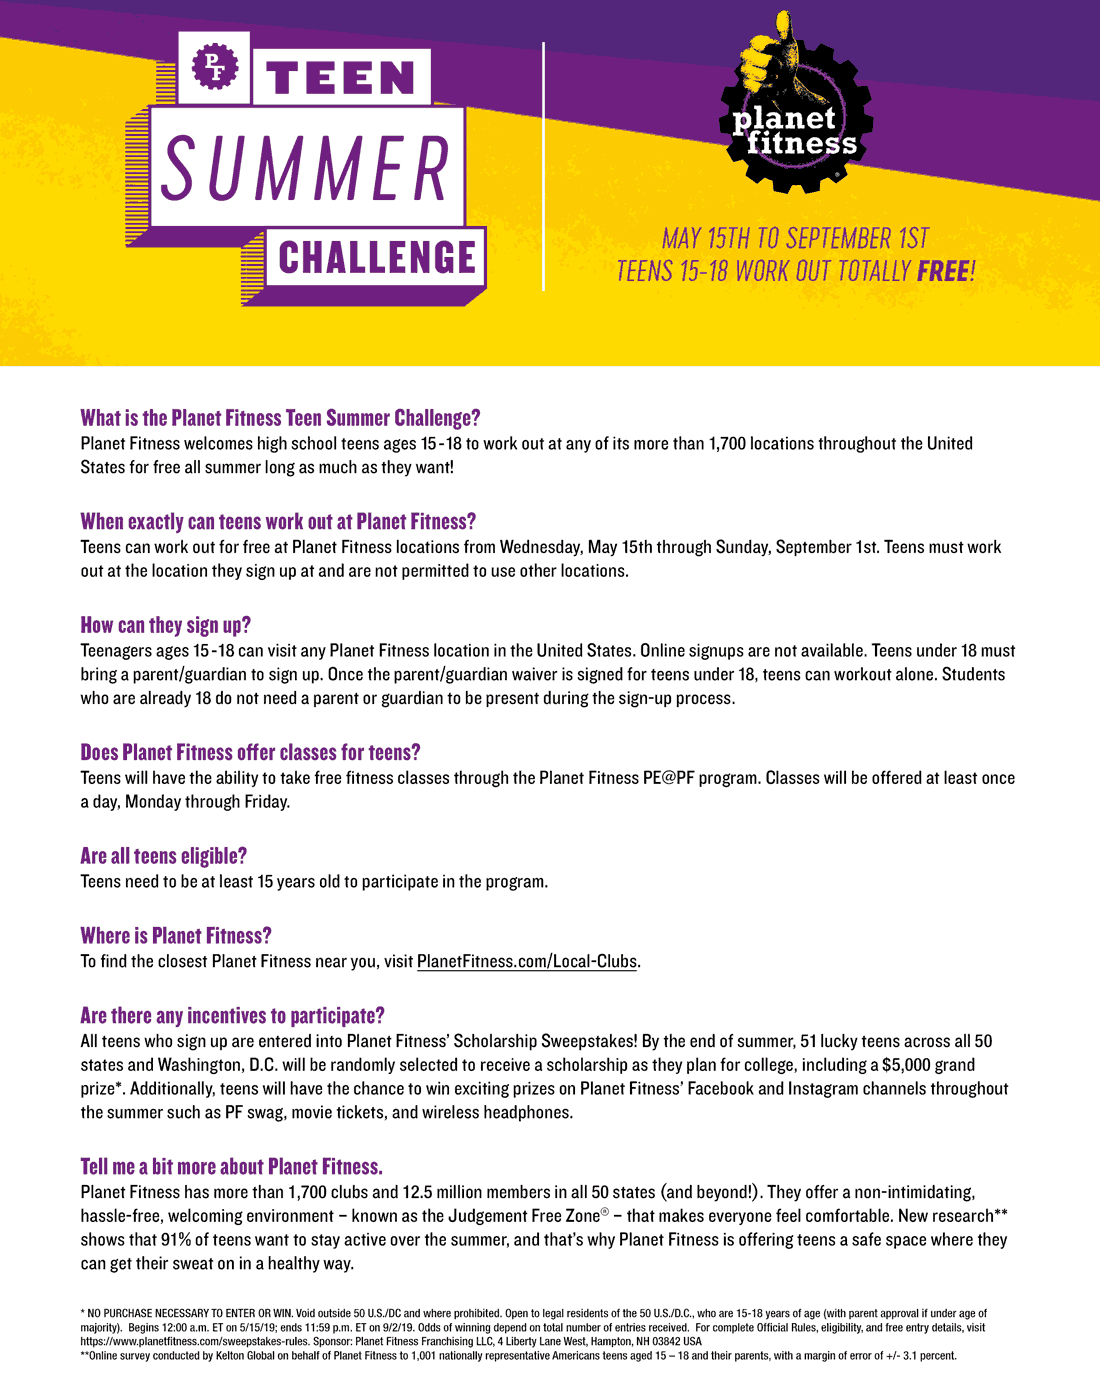 Planet Fitness Coupon January 2020 Teens are free this summer at Planet Fitness